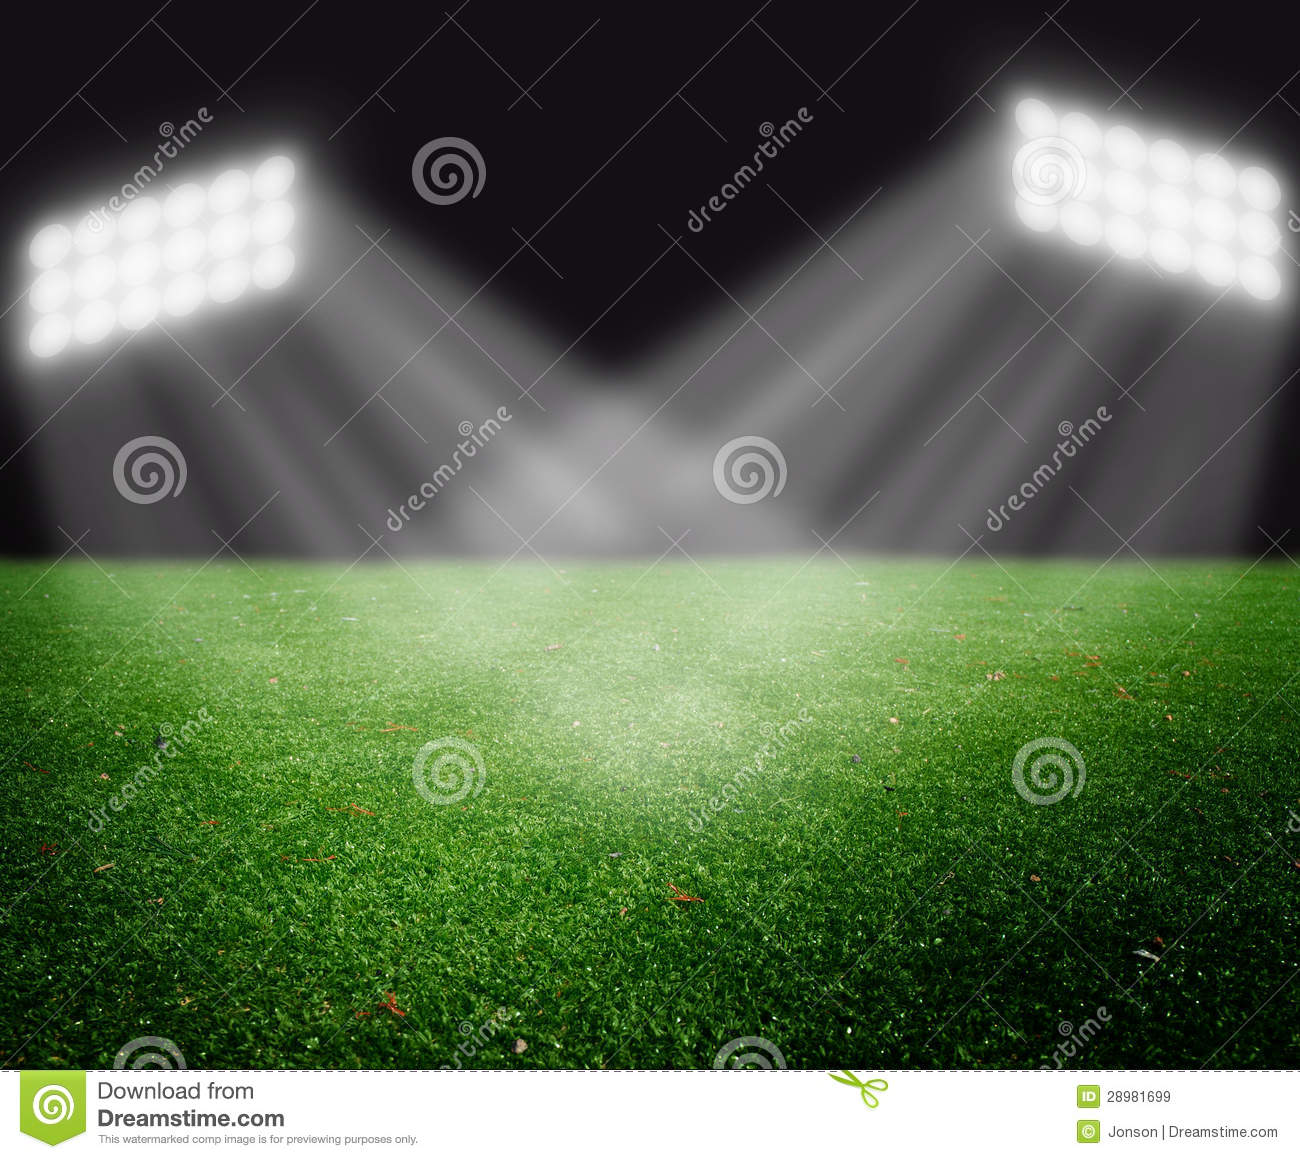 Football Stadium Lights End Table: Soccer Field With Bright Lights Stock Image